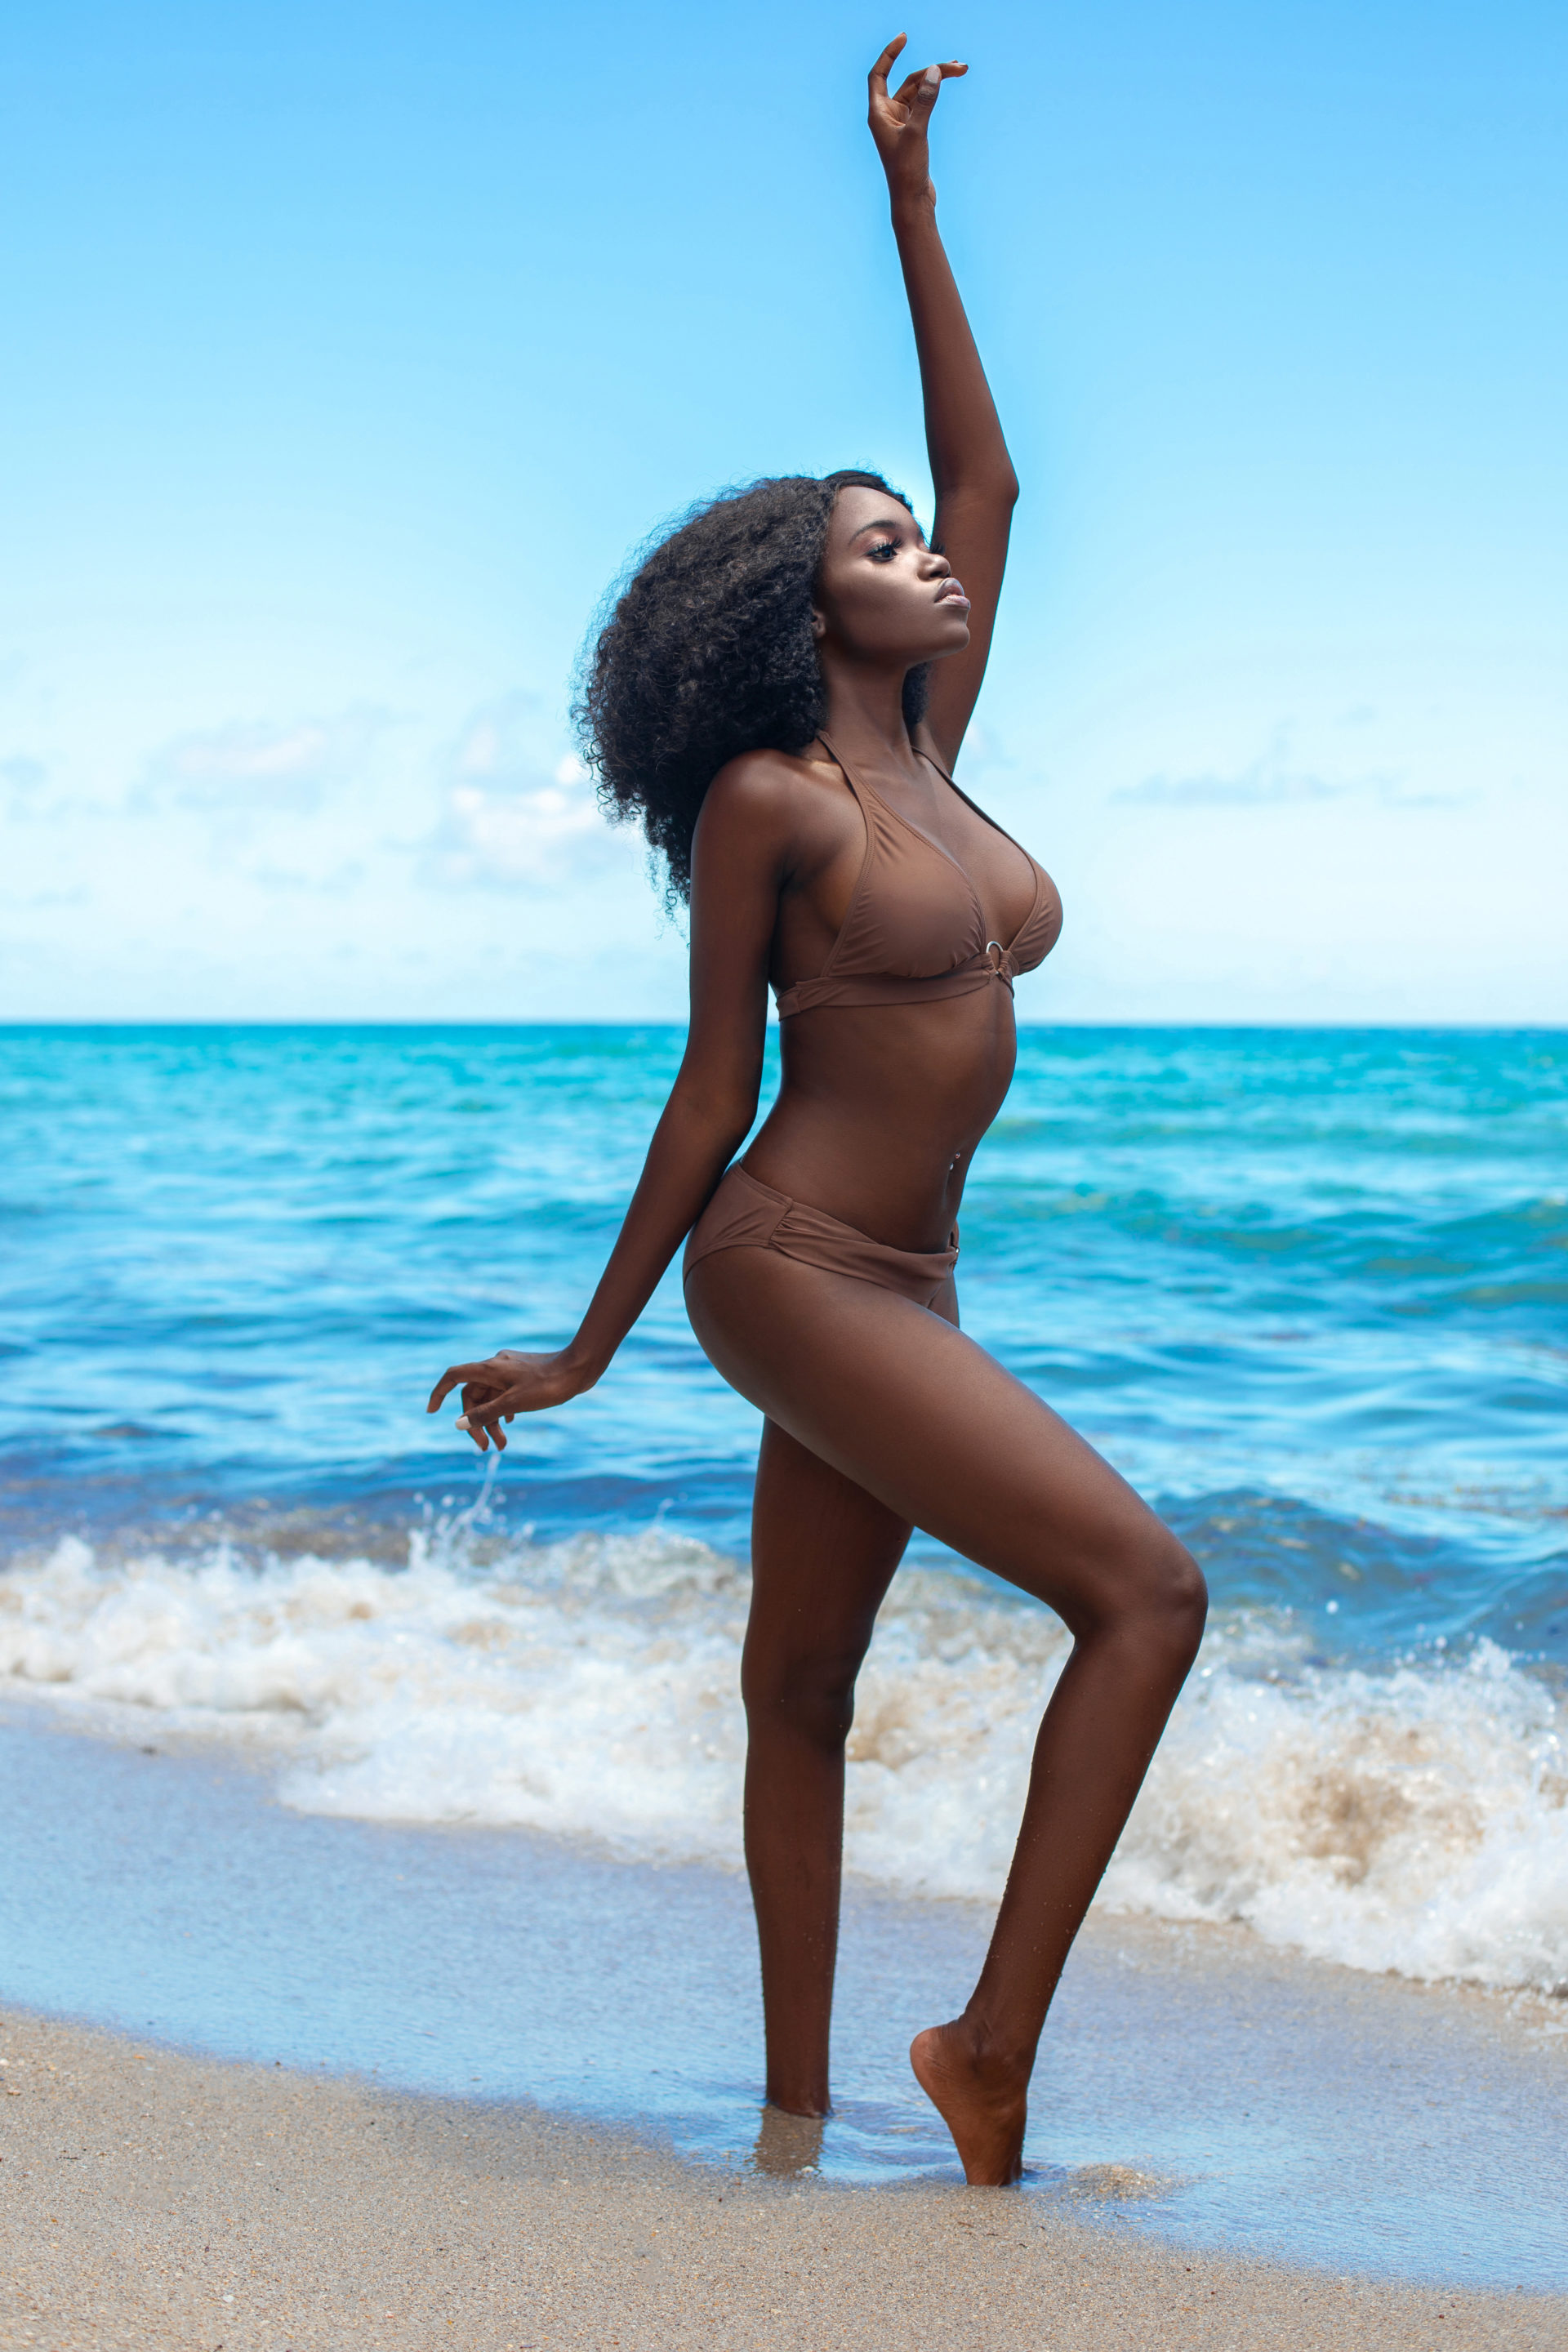 Chocolate, Sugar & Water: Tropical Beach Dancing Black Curly Queen